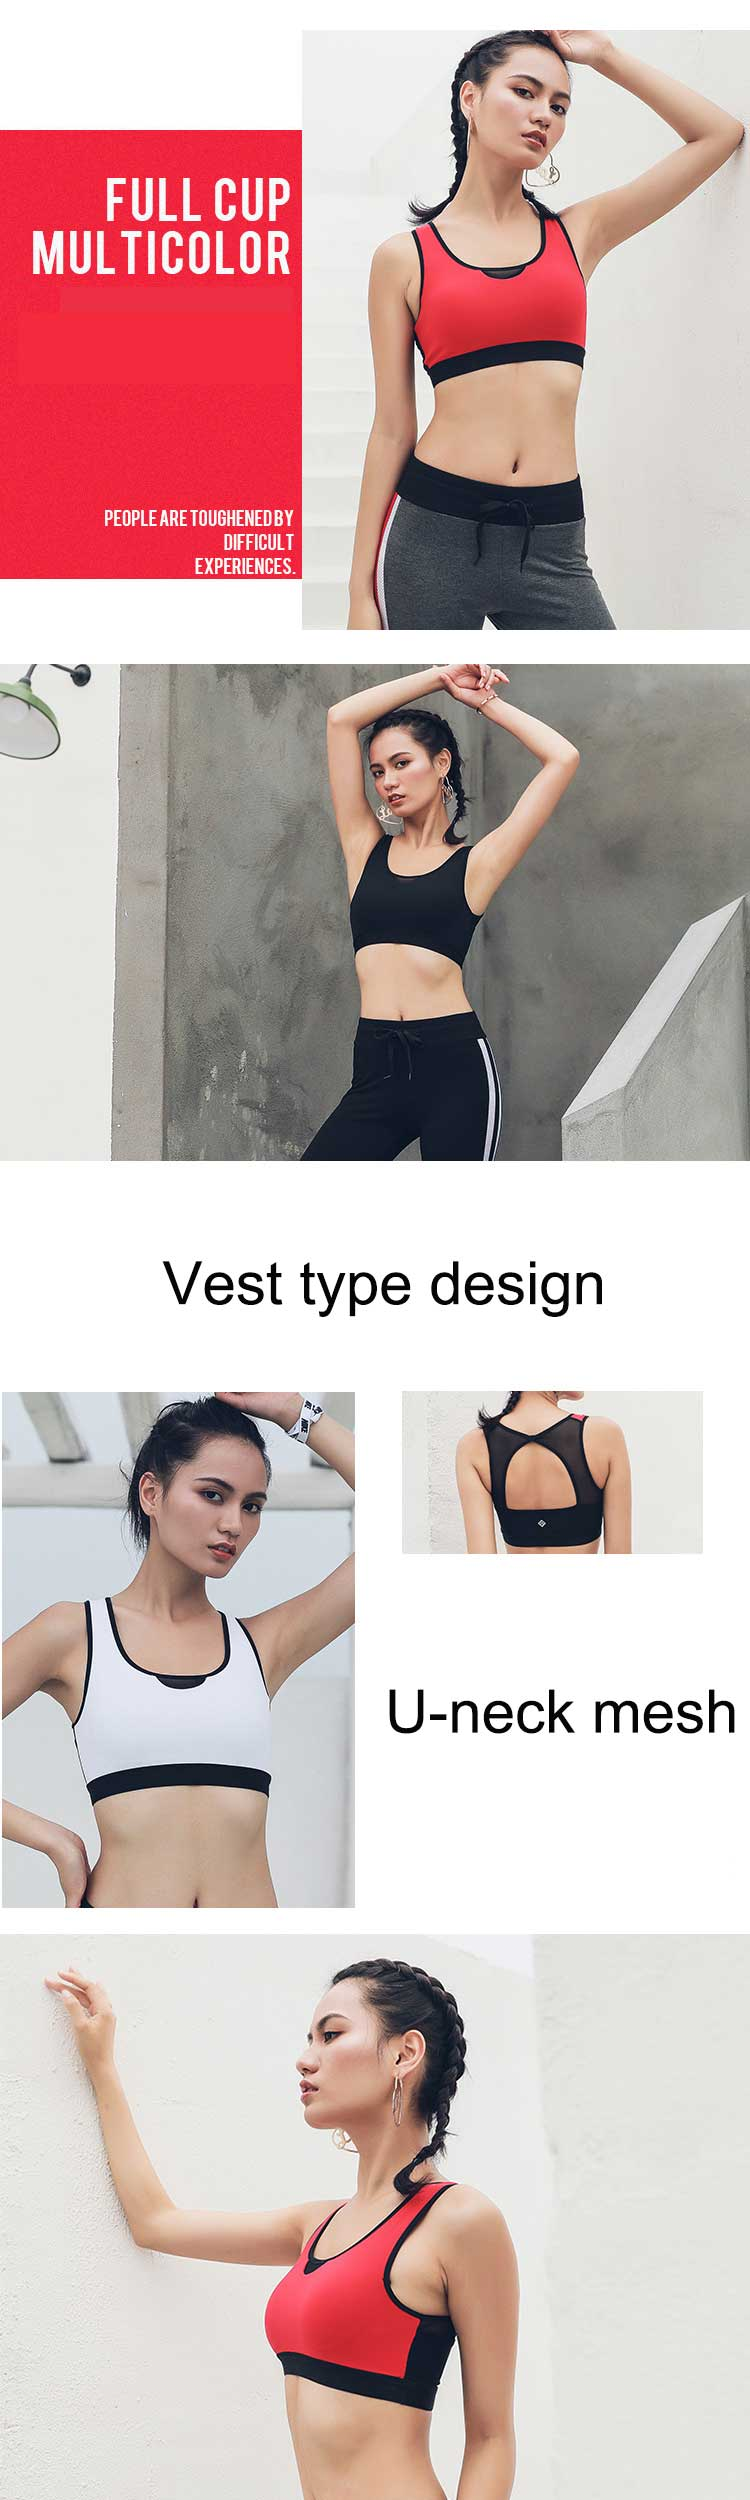 This-is-a-fashionable-sports-bra-for-gym